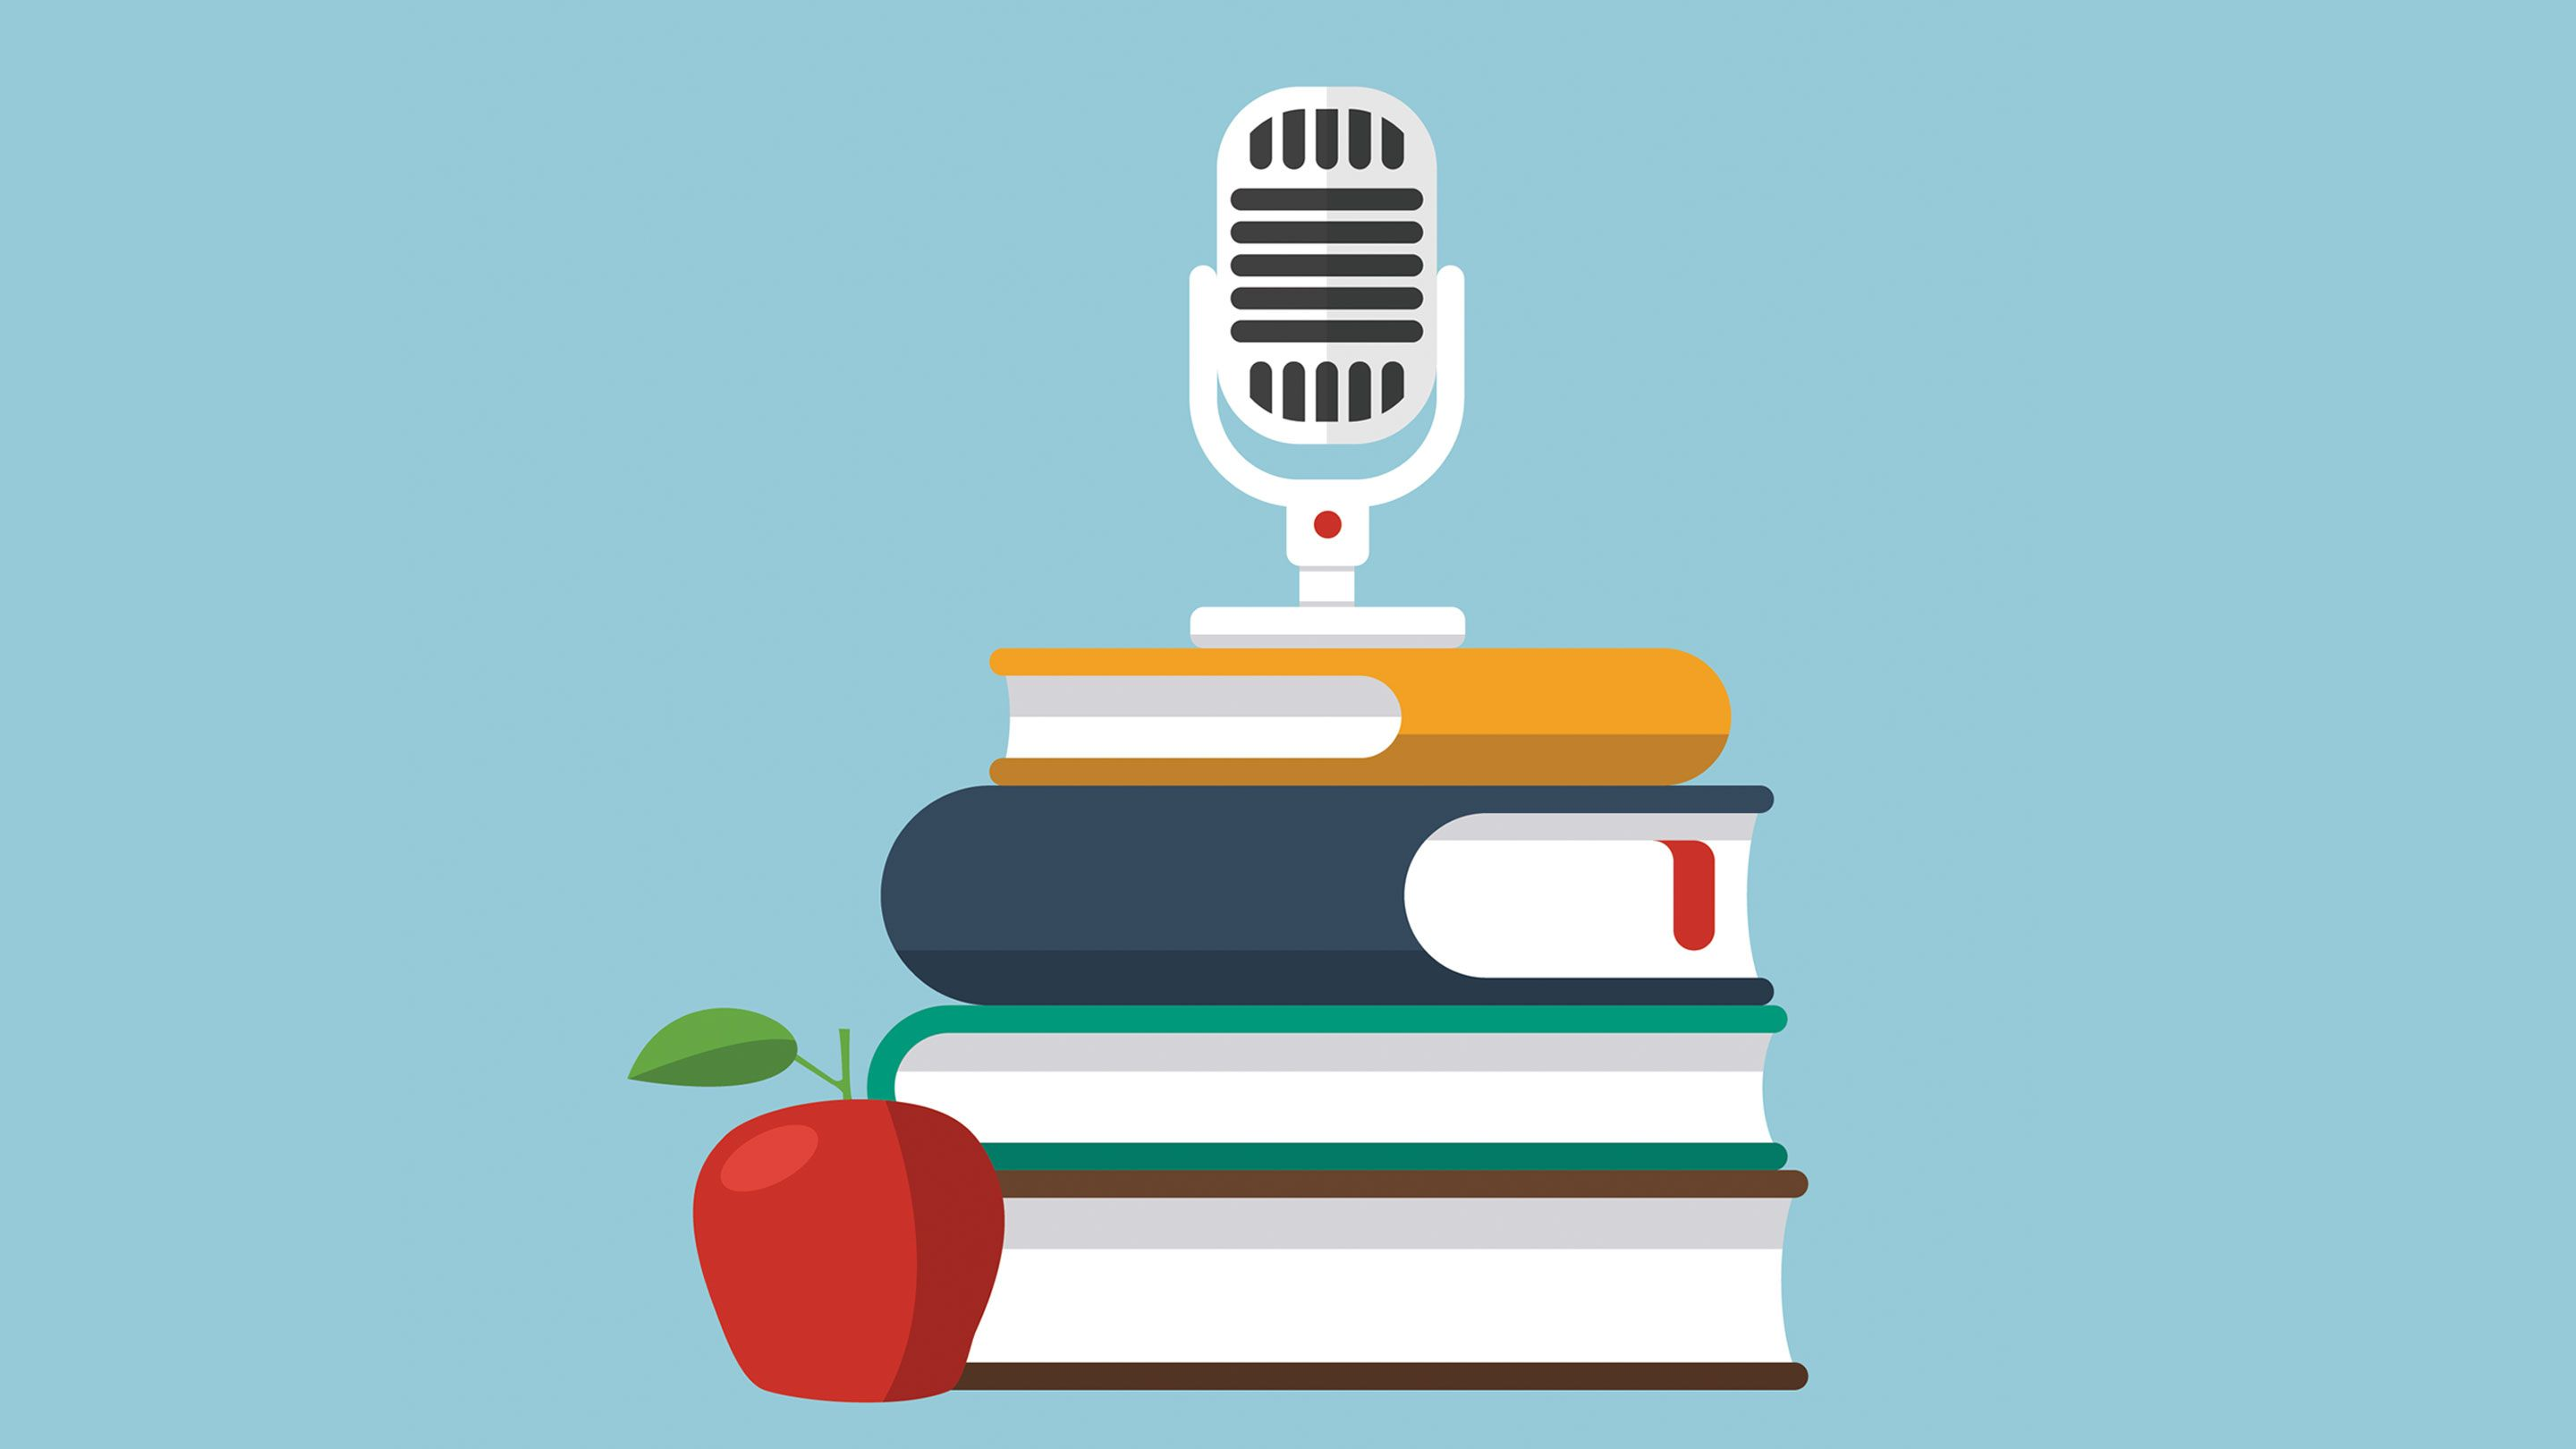 Illustration showing a microphone with a stack of books and an apple